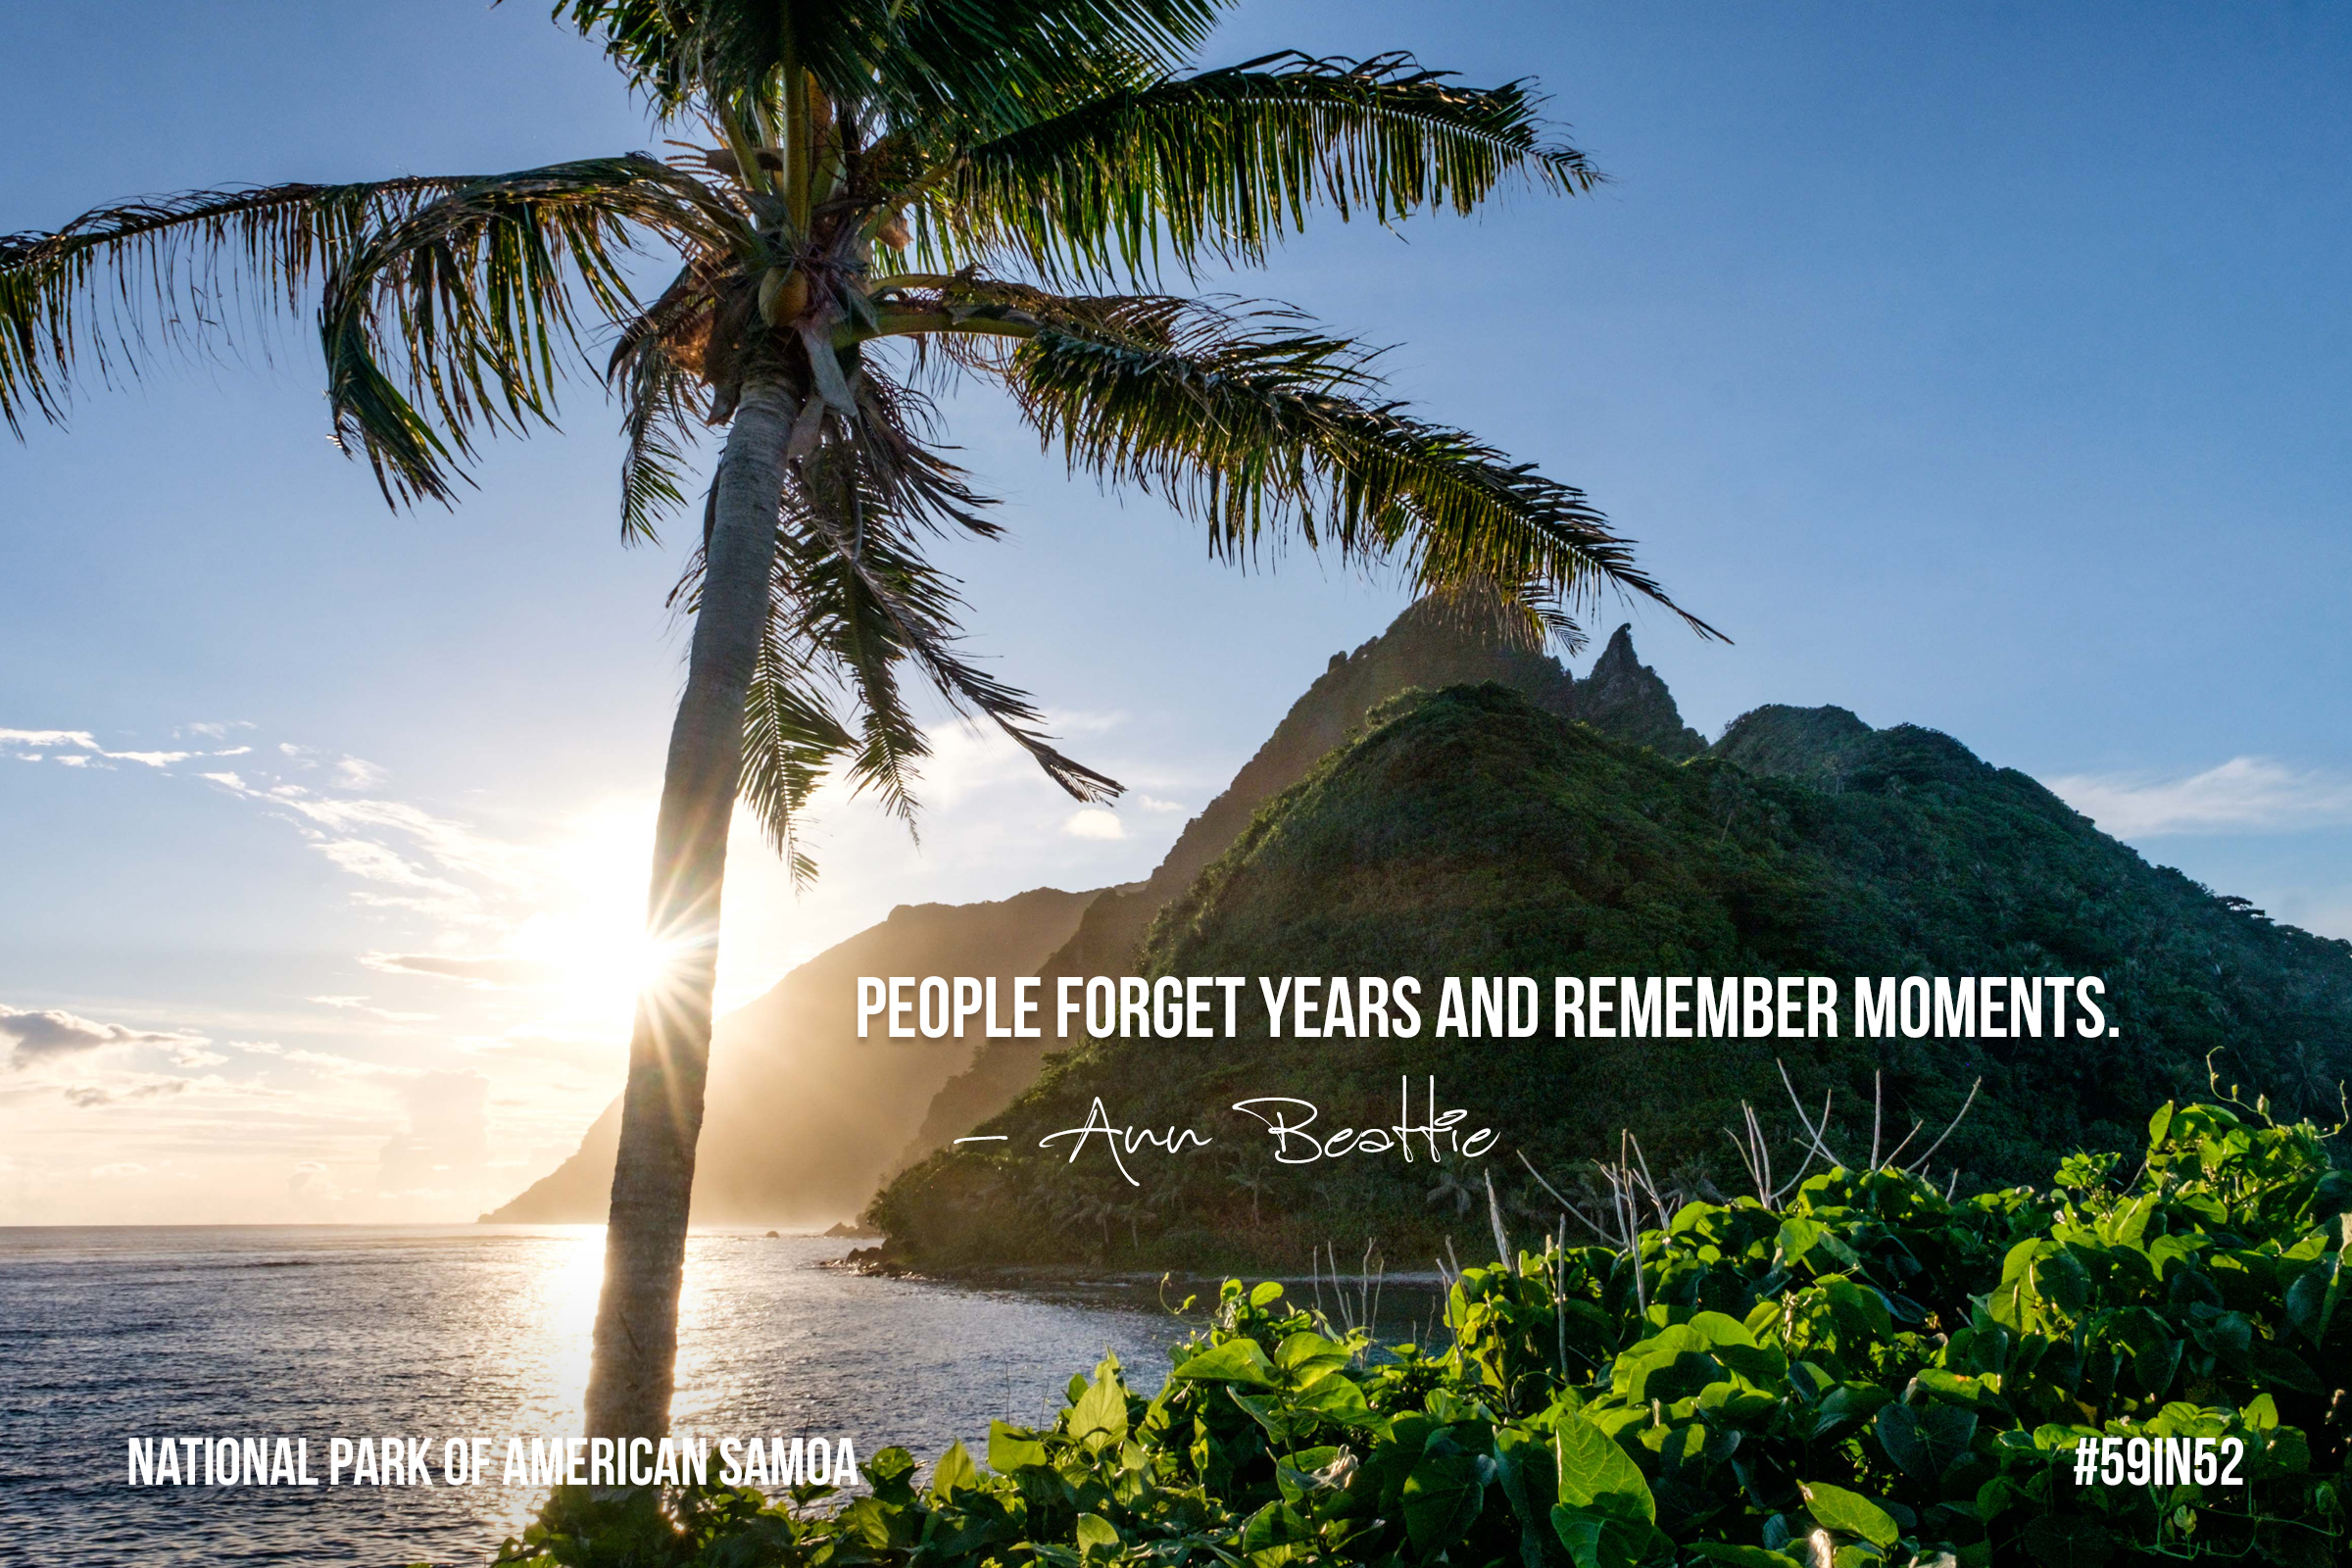 'People forget years and remember moments.' - Ann Beattie